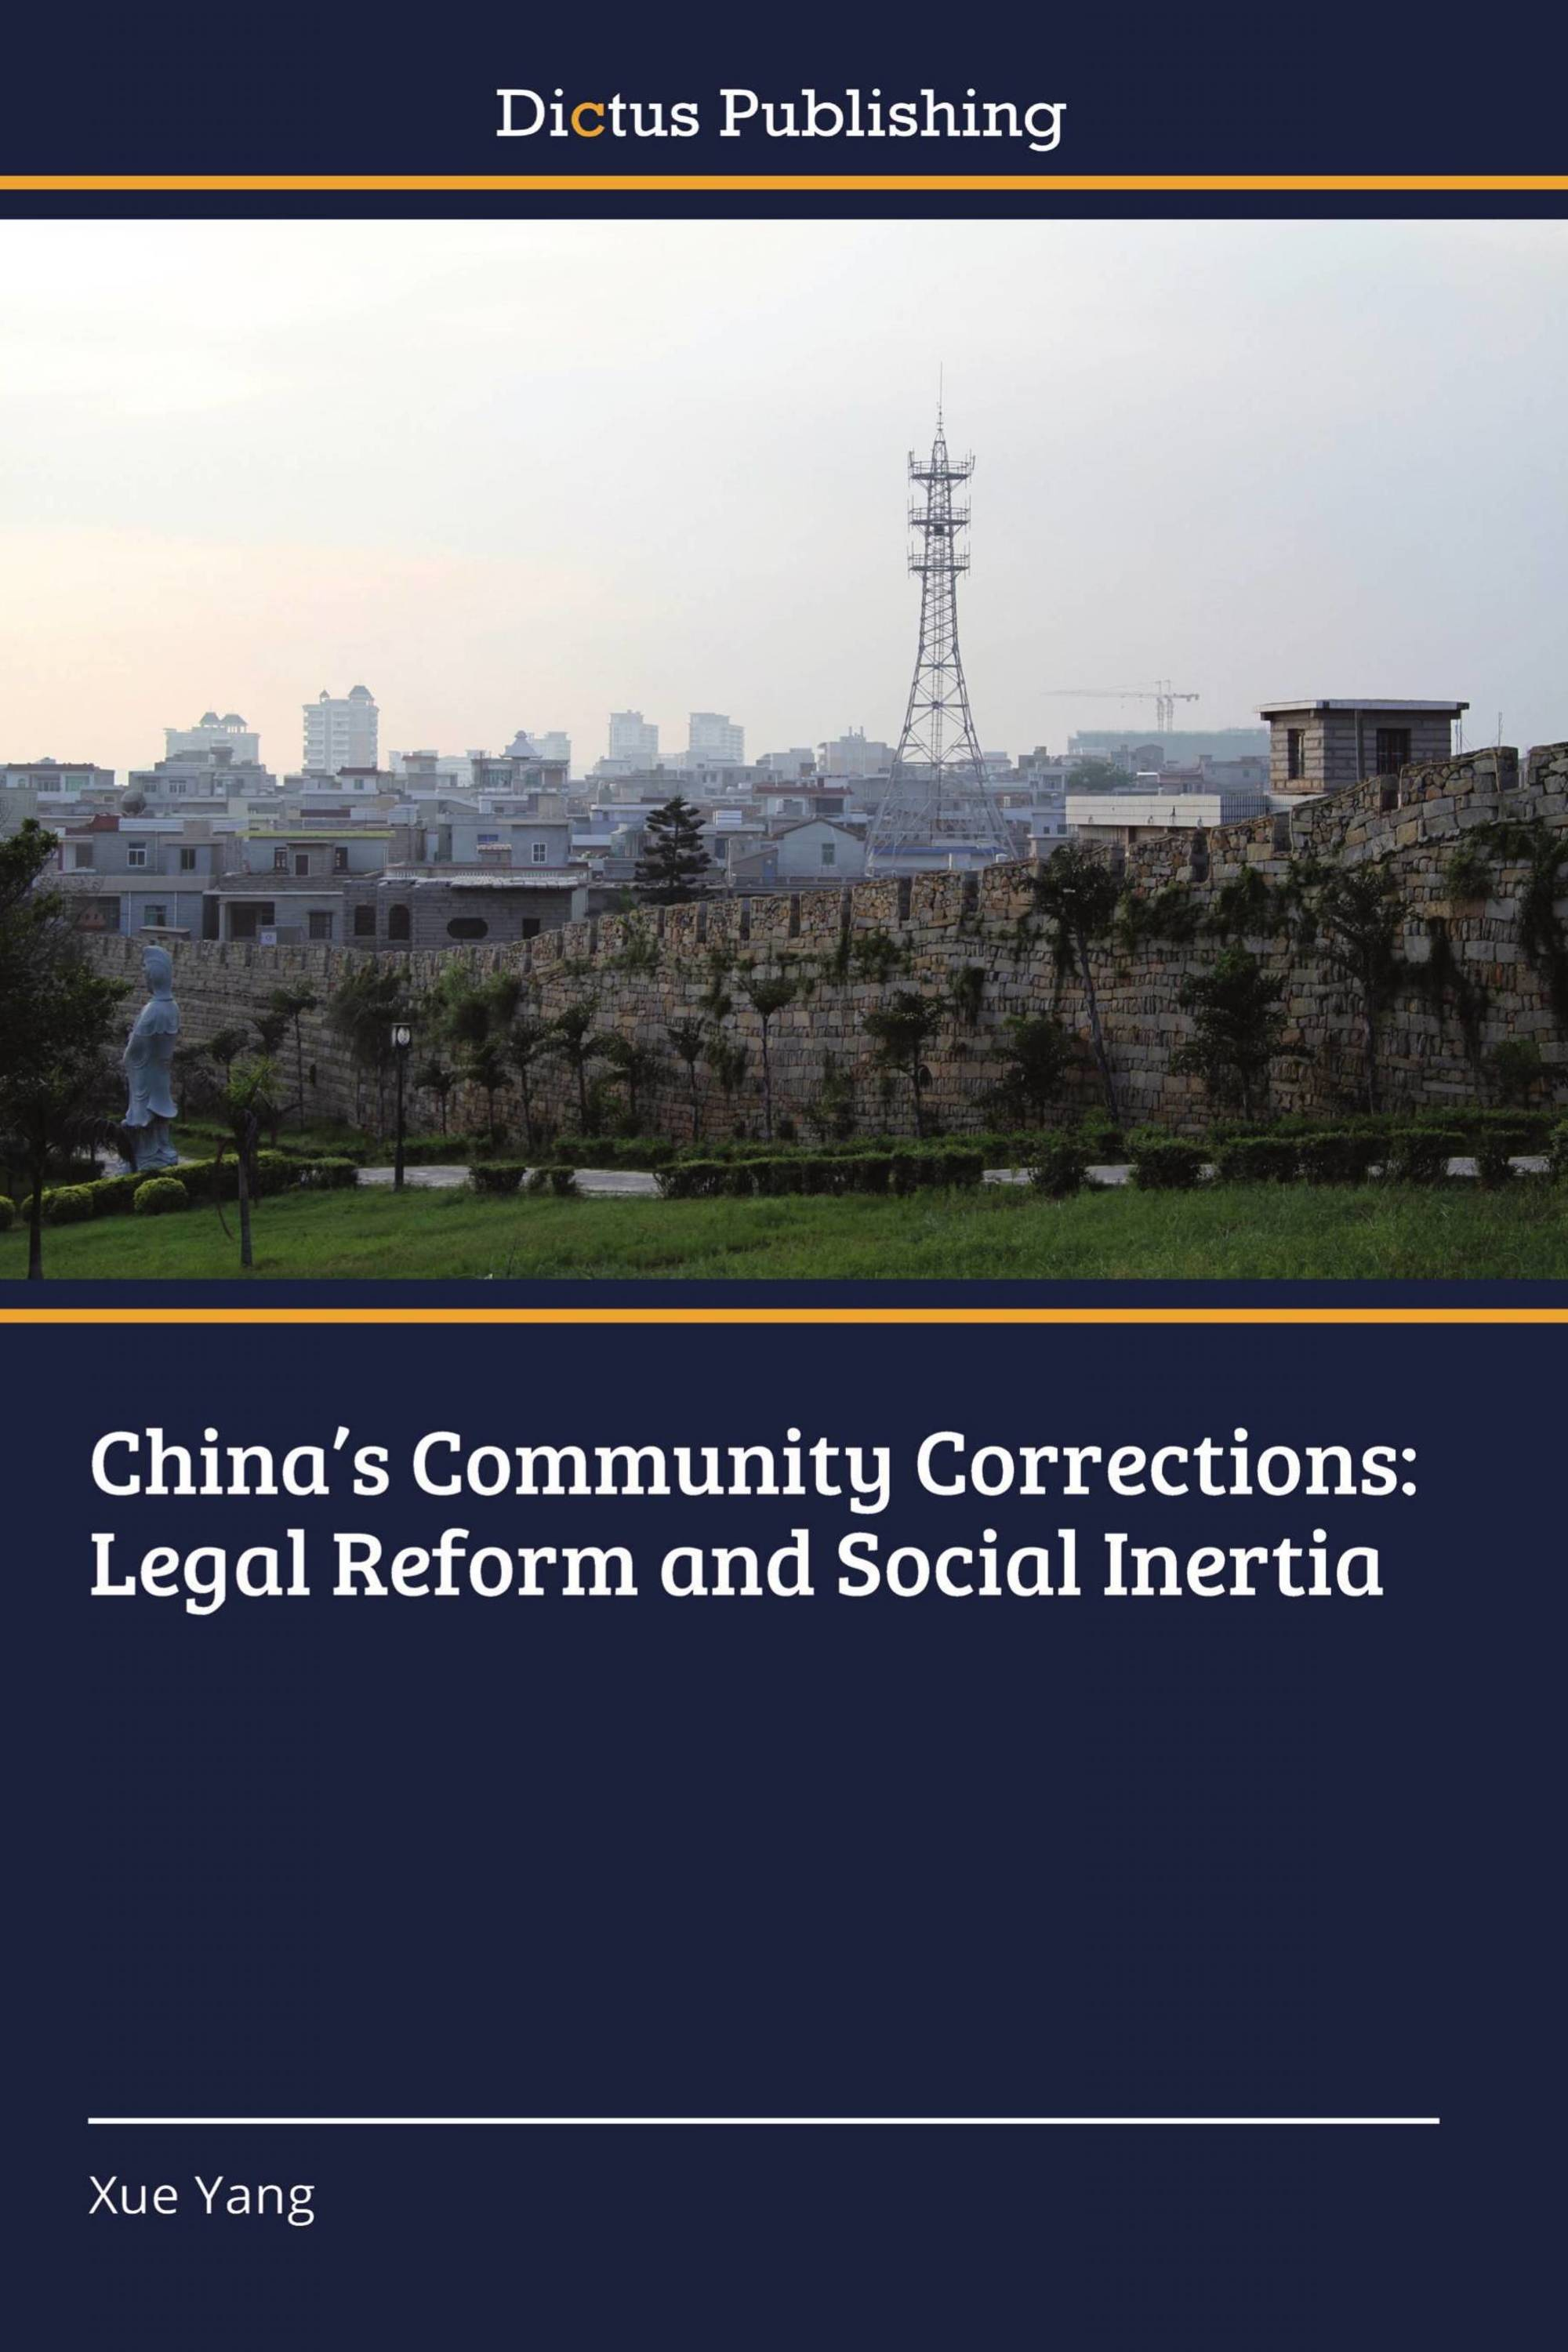 China's Community Corrections: Legal Reform and Social Inertia